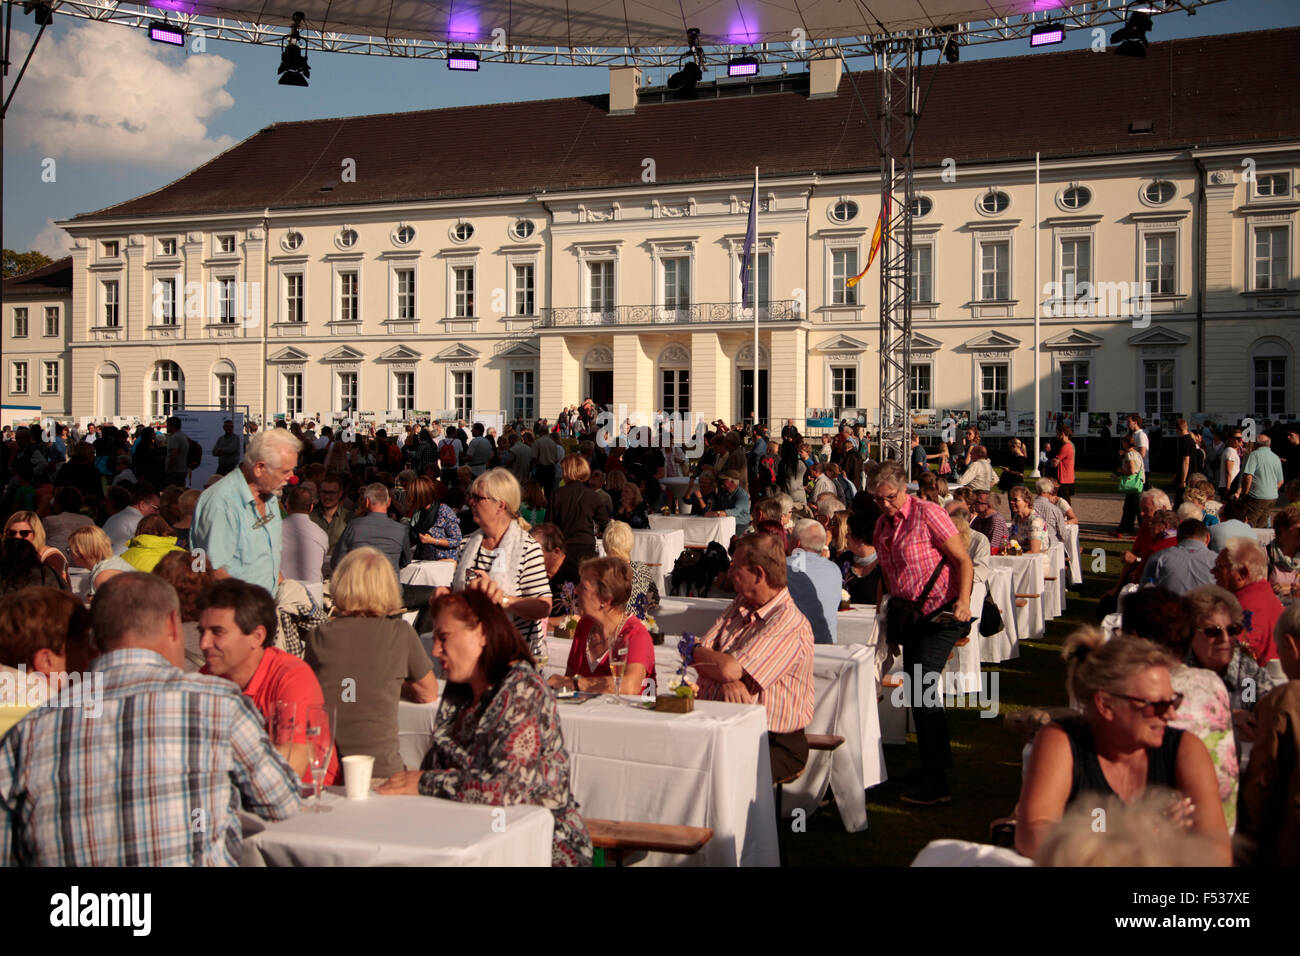 annual Citizens' Fest at Bellevue Palace, Berlin, Germany - Stock Image